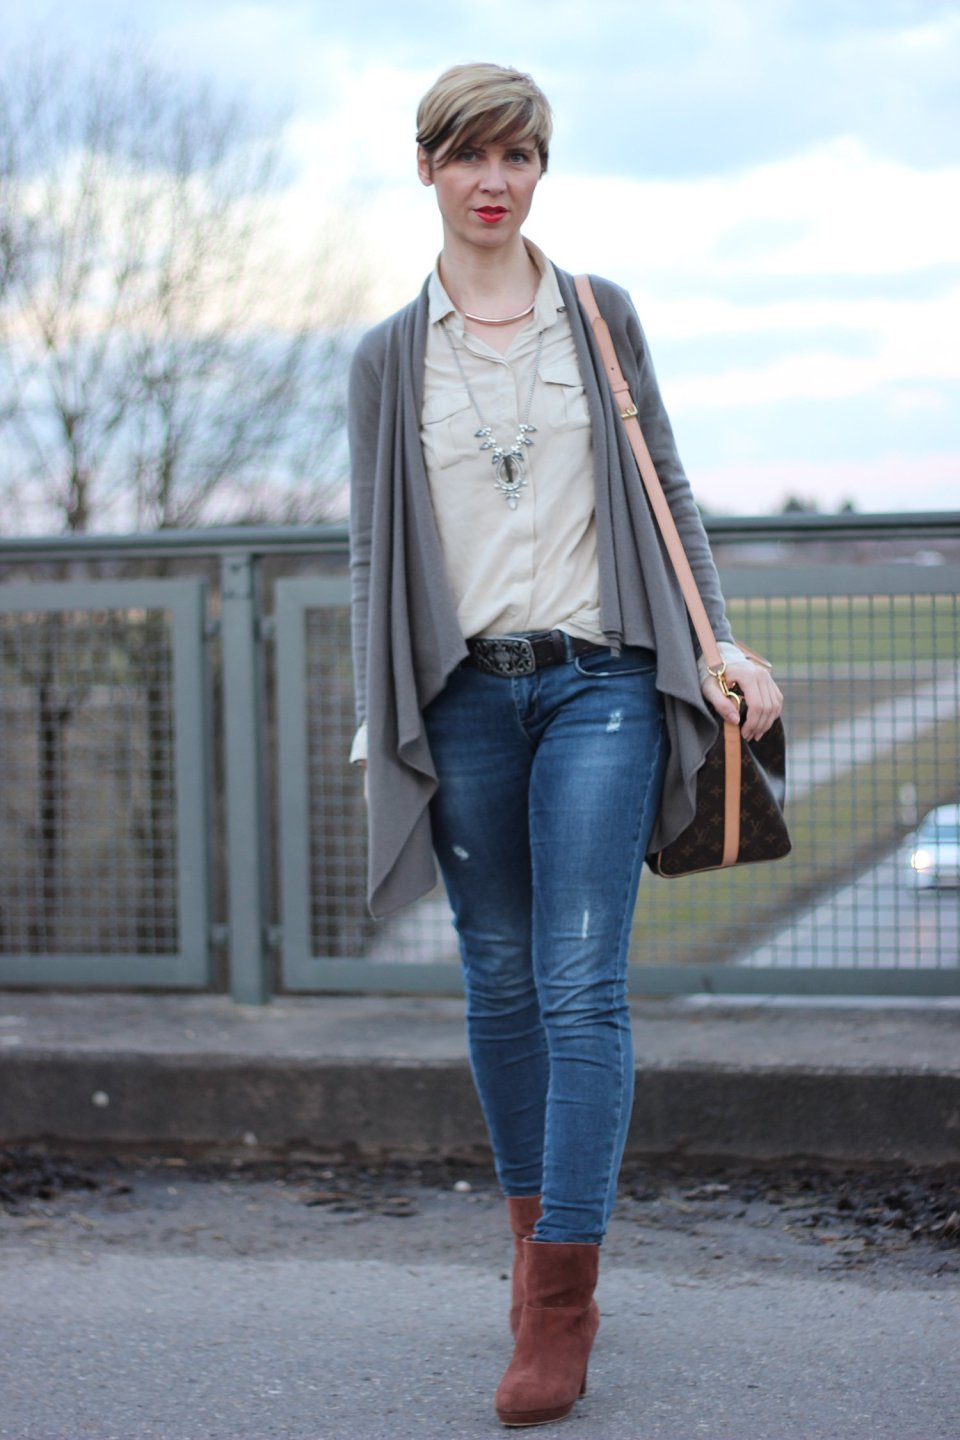 IMG_0890a_Cardigan_Boden_Only_Jeans_MarcoPolo_Bluse_StellaandDot_Kette_Office_buero